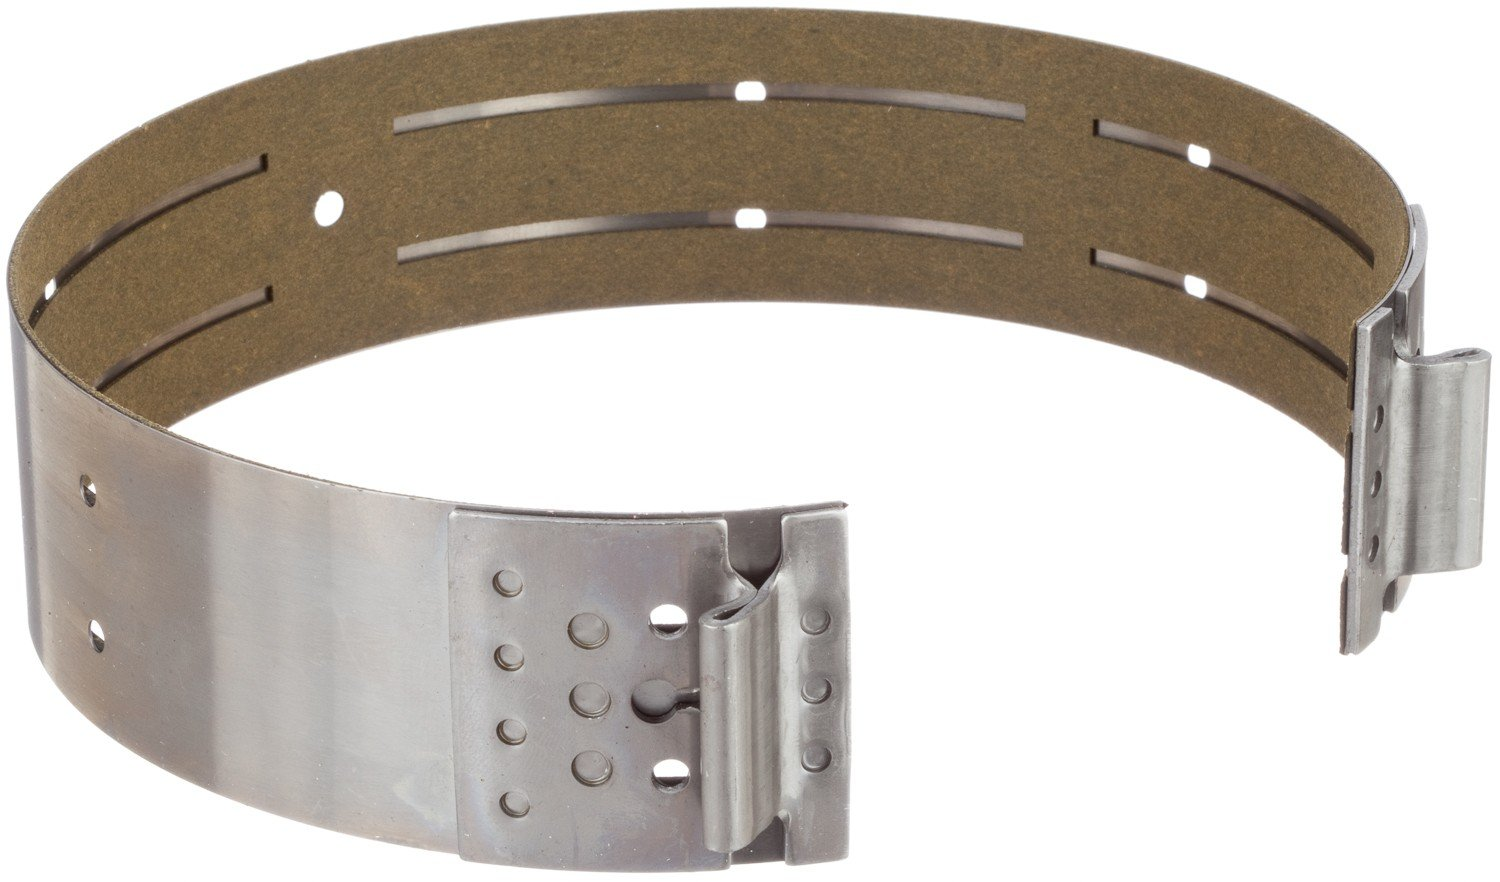 ATP FX-125 Automatic Transmission Band